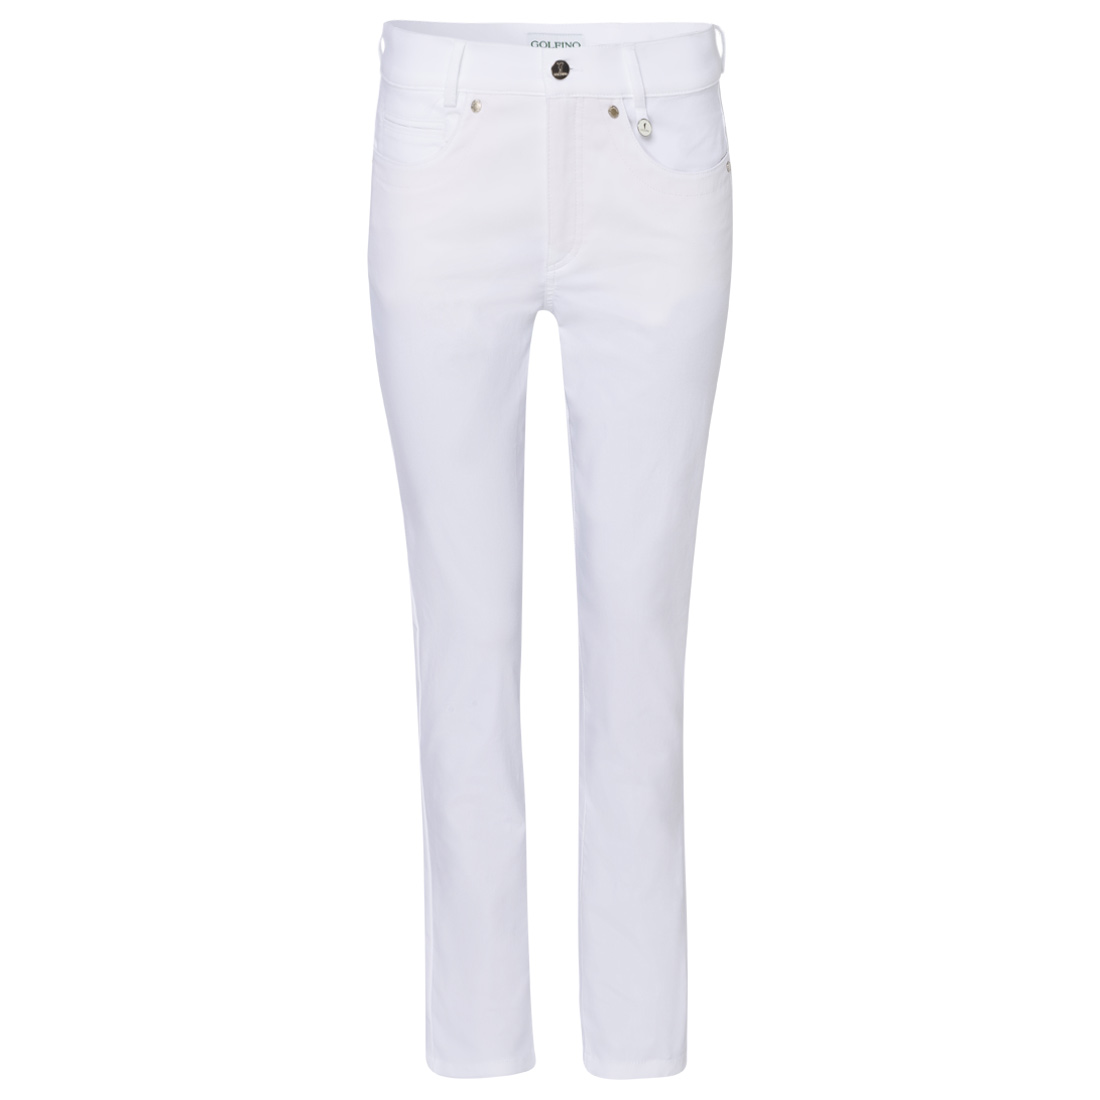 Ladies' 7/8 pants in 5-pocket style made from stretch material with sun protection function